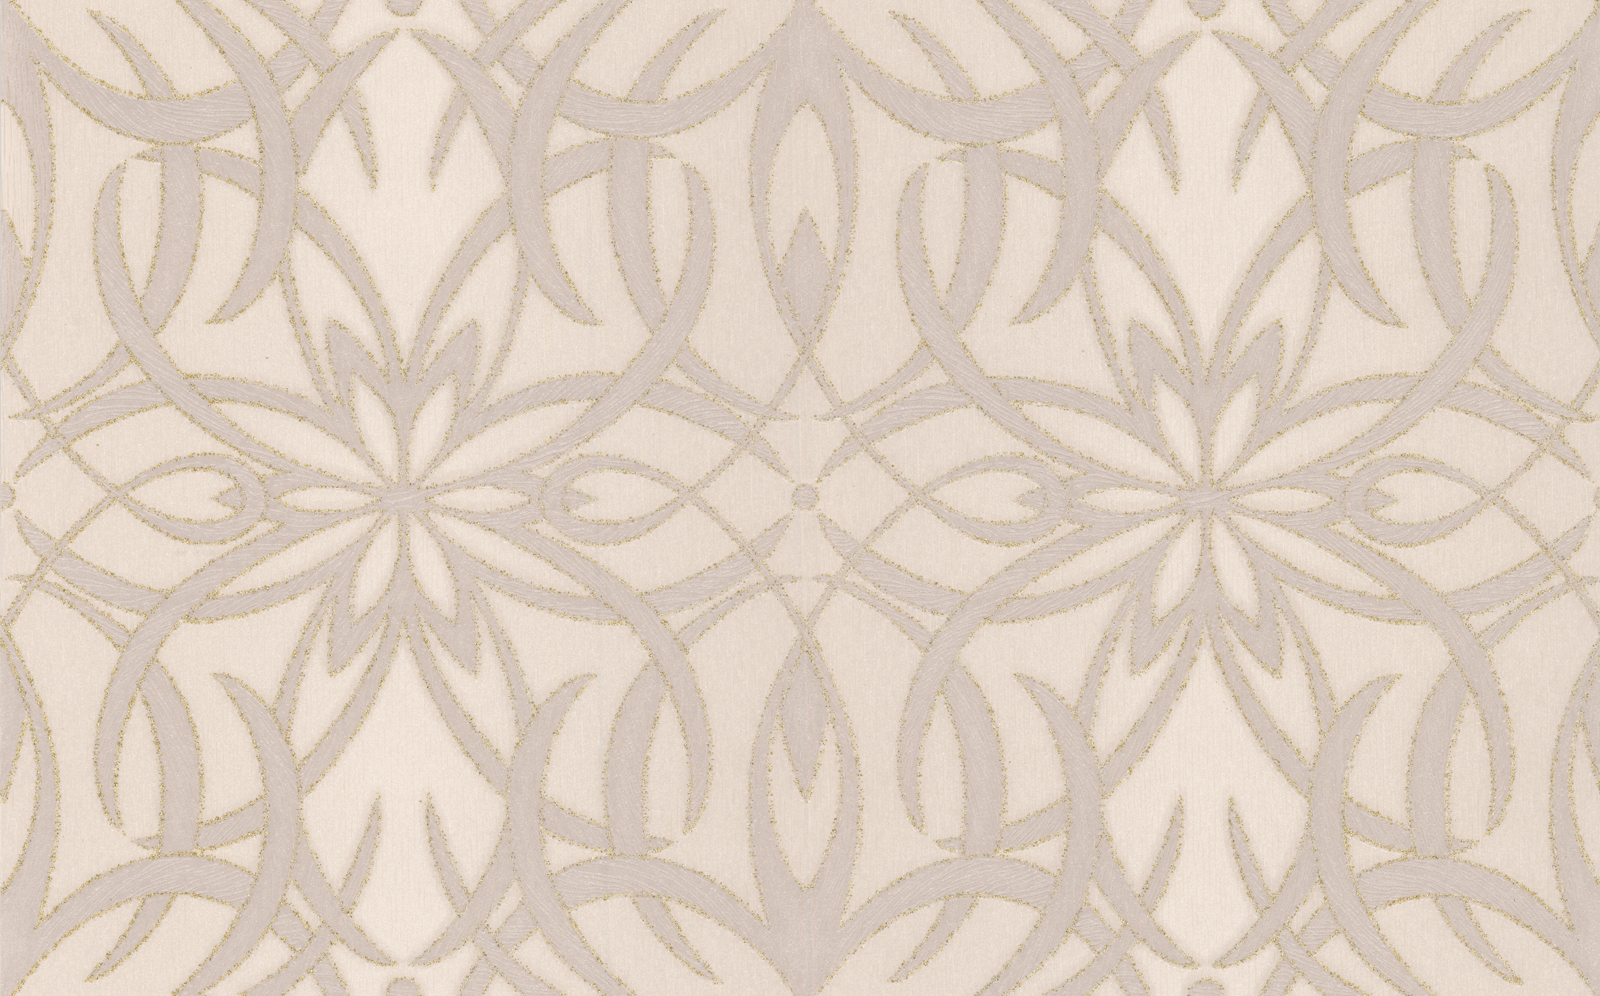 Trendy Wallpaper For The Home Wallpapersafari